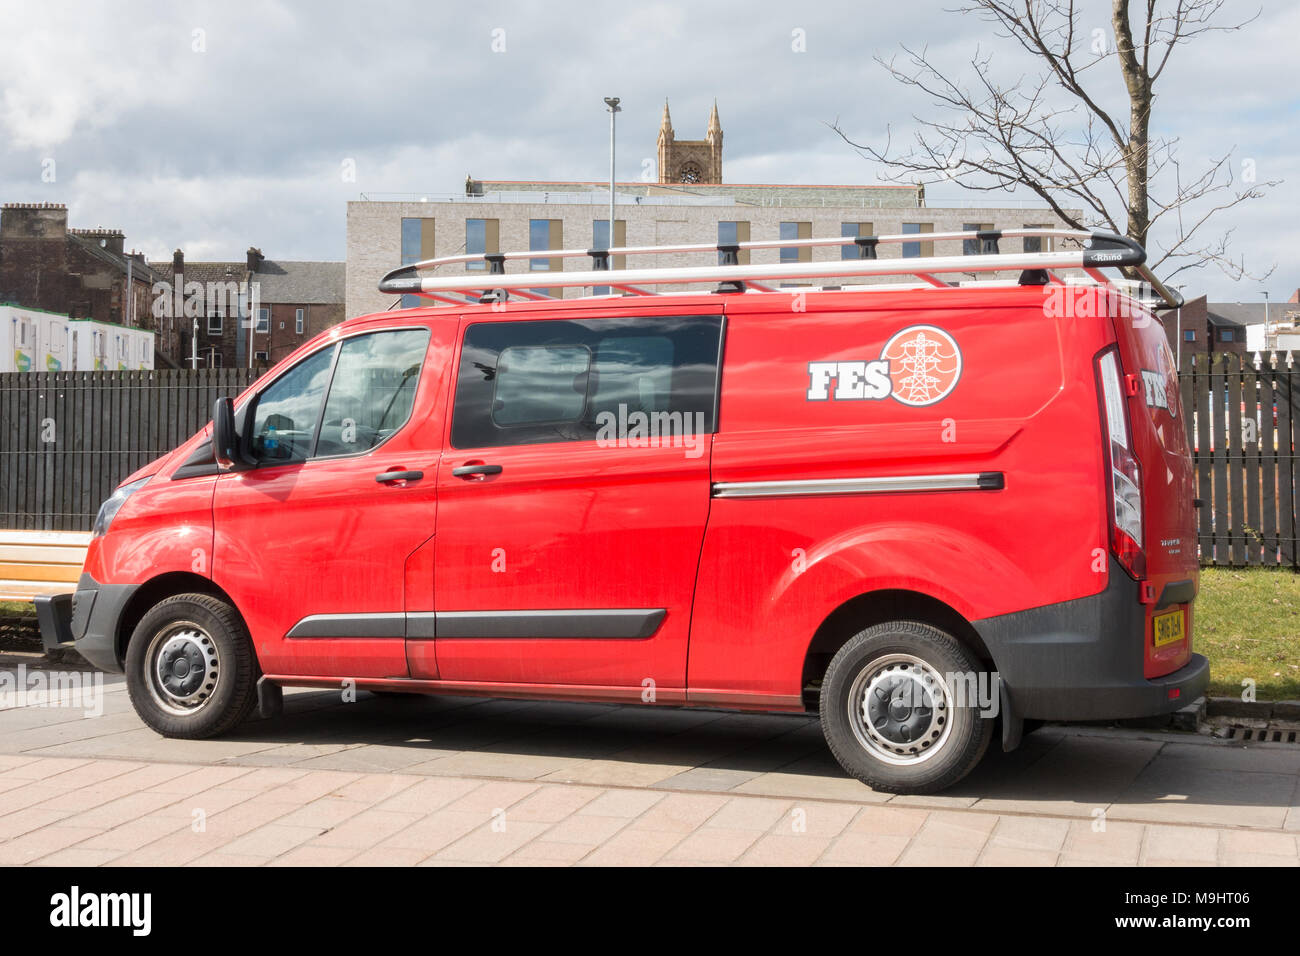 FES Group building services vehicle - Stock Image